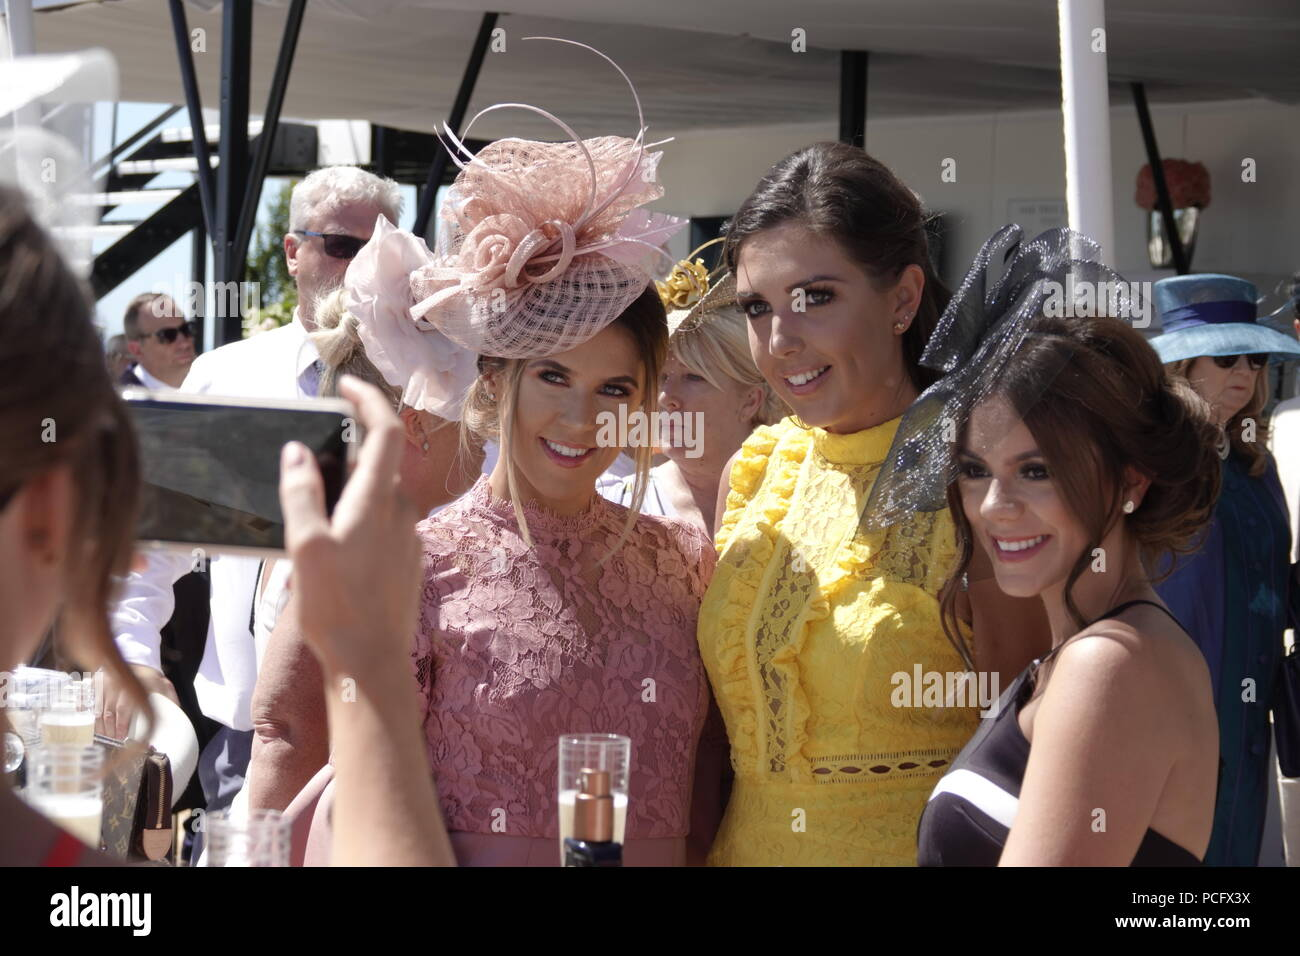 Goodwood Racecourse, West Sussex, UK. 2nd August,  2018   Goodwood Racecourse, West Sussex, UK The girls all dolled up take their 'selfies' during  Ladies Day on the sunny Sussex Downs at Glorious Goodwood day} three. Credit: Motofoto/Alamy Live News - Stock Image